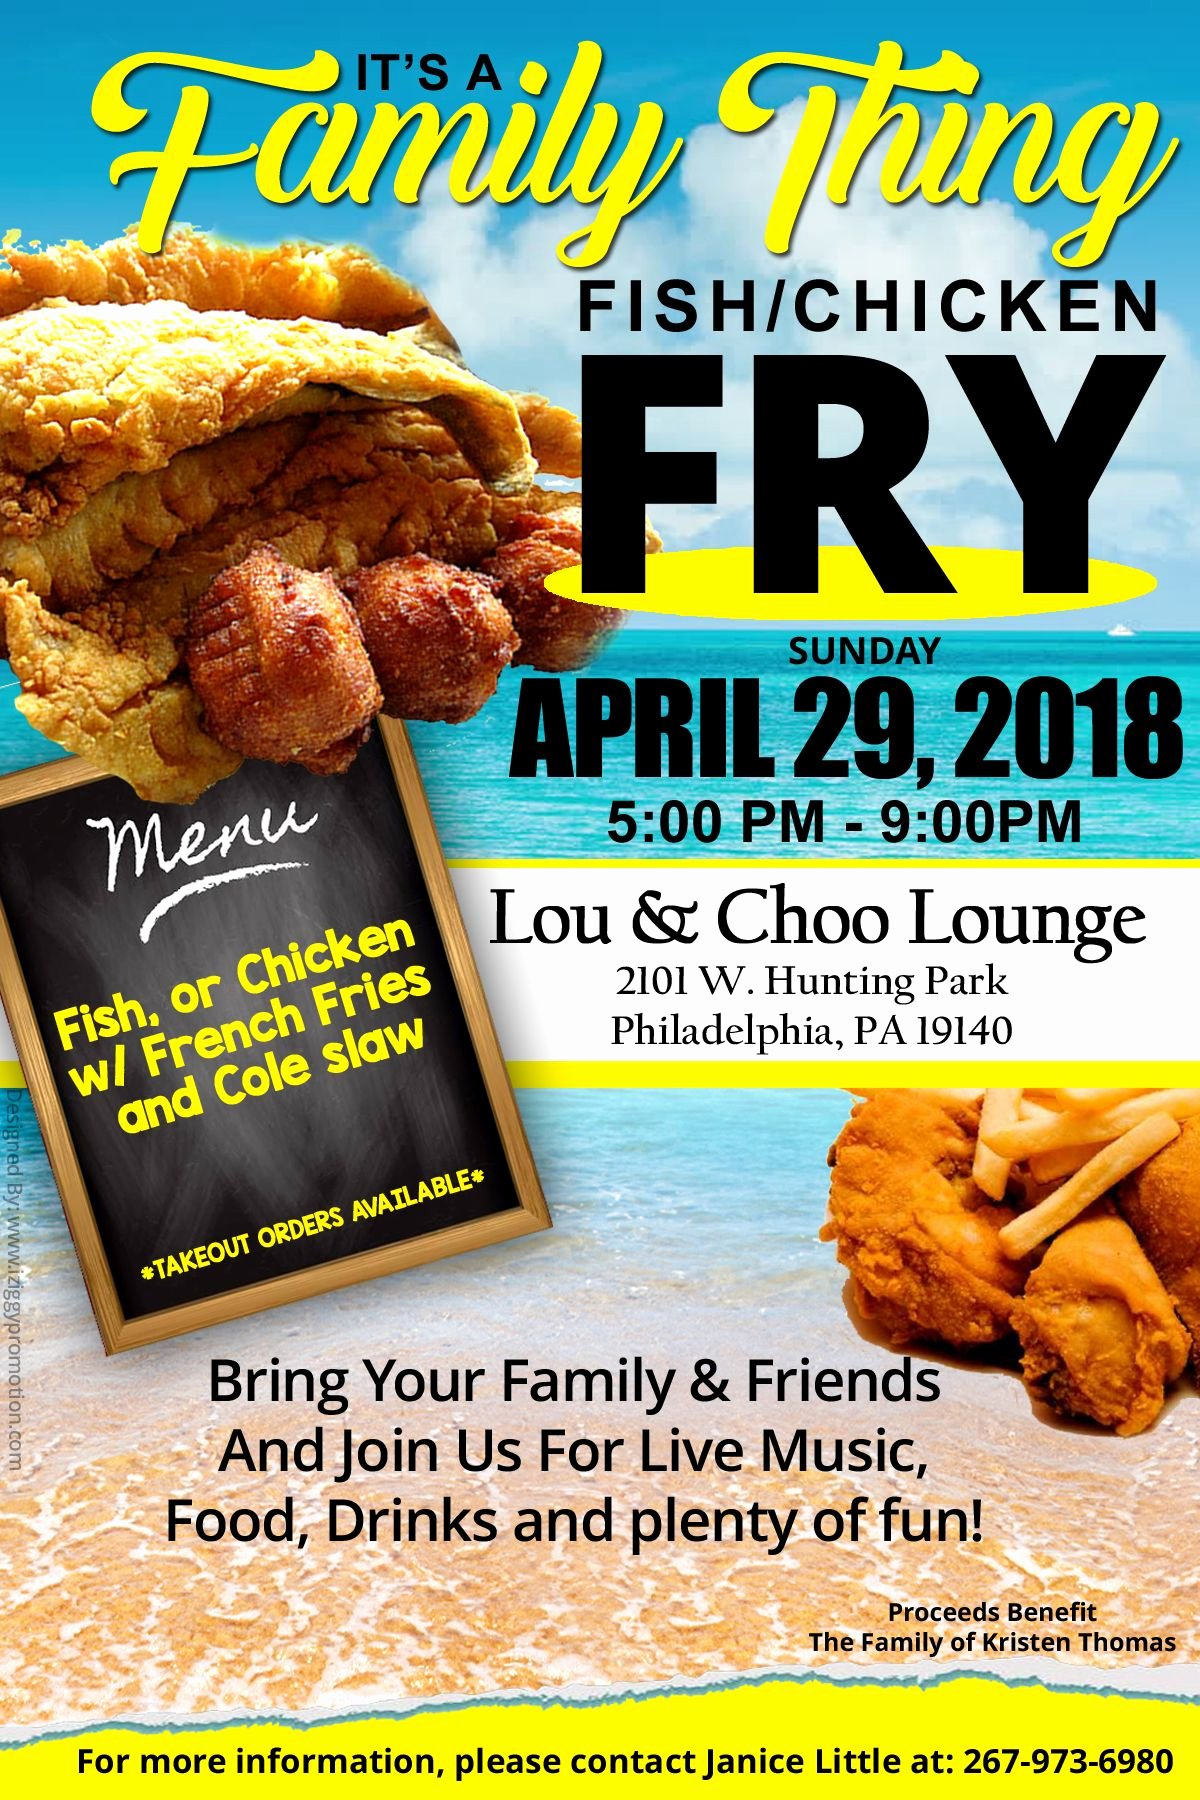 Free Fish Fry Flyer Template Lovely Family Fish Fry Flyer Created by Iziggypromotion